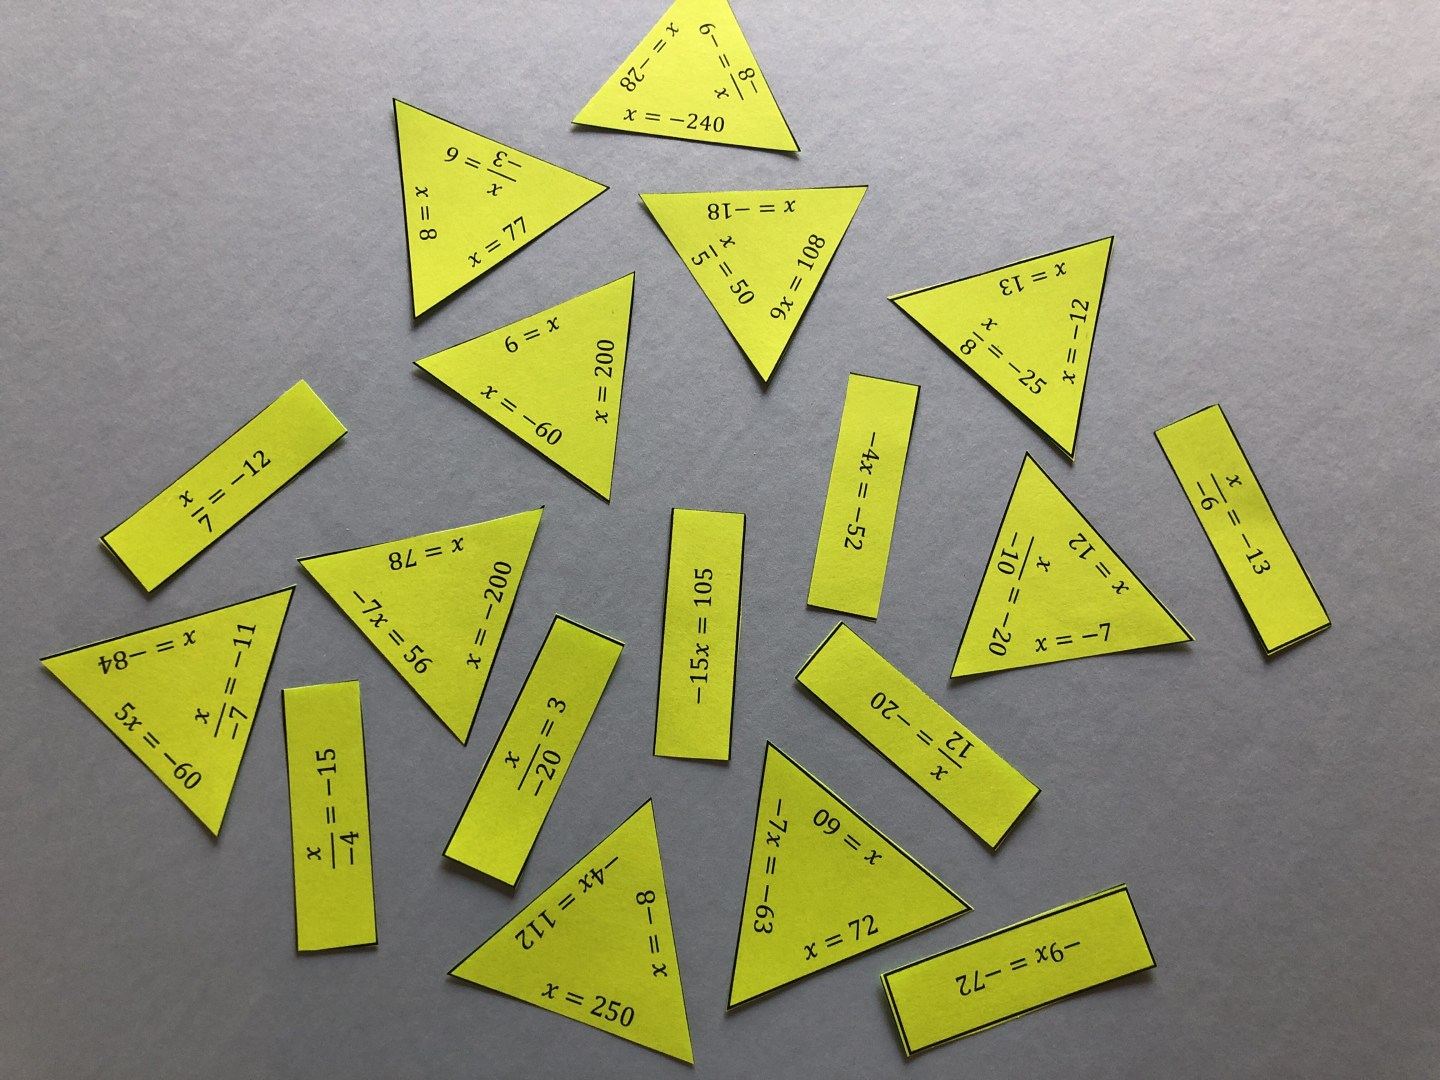 This engaging puzzle is a unique way to review one-step multiplication and division equations with integers. Puzzles force our students to think, whether they want to or not! To solve the puzzle, students will add or subtract integers to isolate the variable. The solutions will be integers; both positive and negative numbers. There is one question like this: -3-x=21 , where the students will have to deal with that negative one x. The rest of the equations are typical addition and subtraction equations. This puzzle is the PERFECT size for an interactive math notebook (even when you are using a composition notebook). Try using this puzzle in a math station when you are doing rotations - cut out the pieces ahead of time and laminate them to save time.